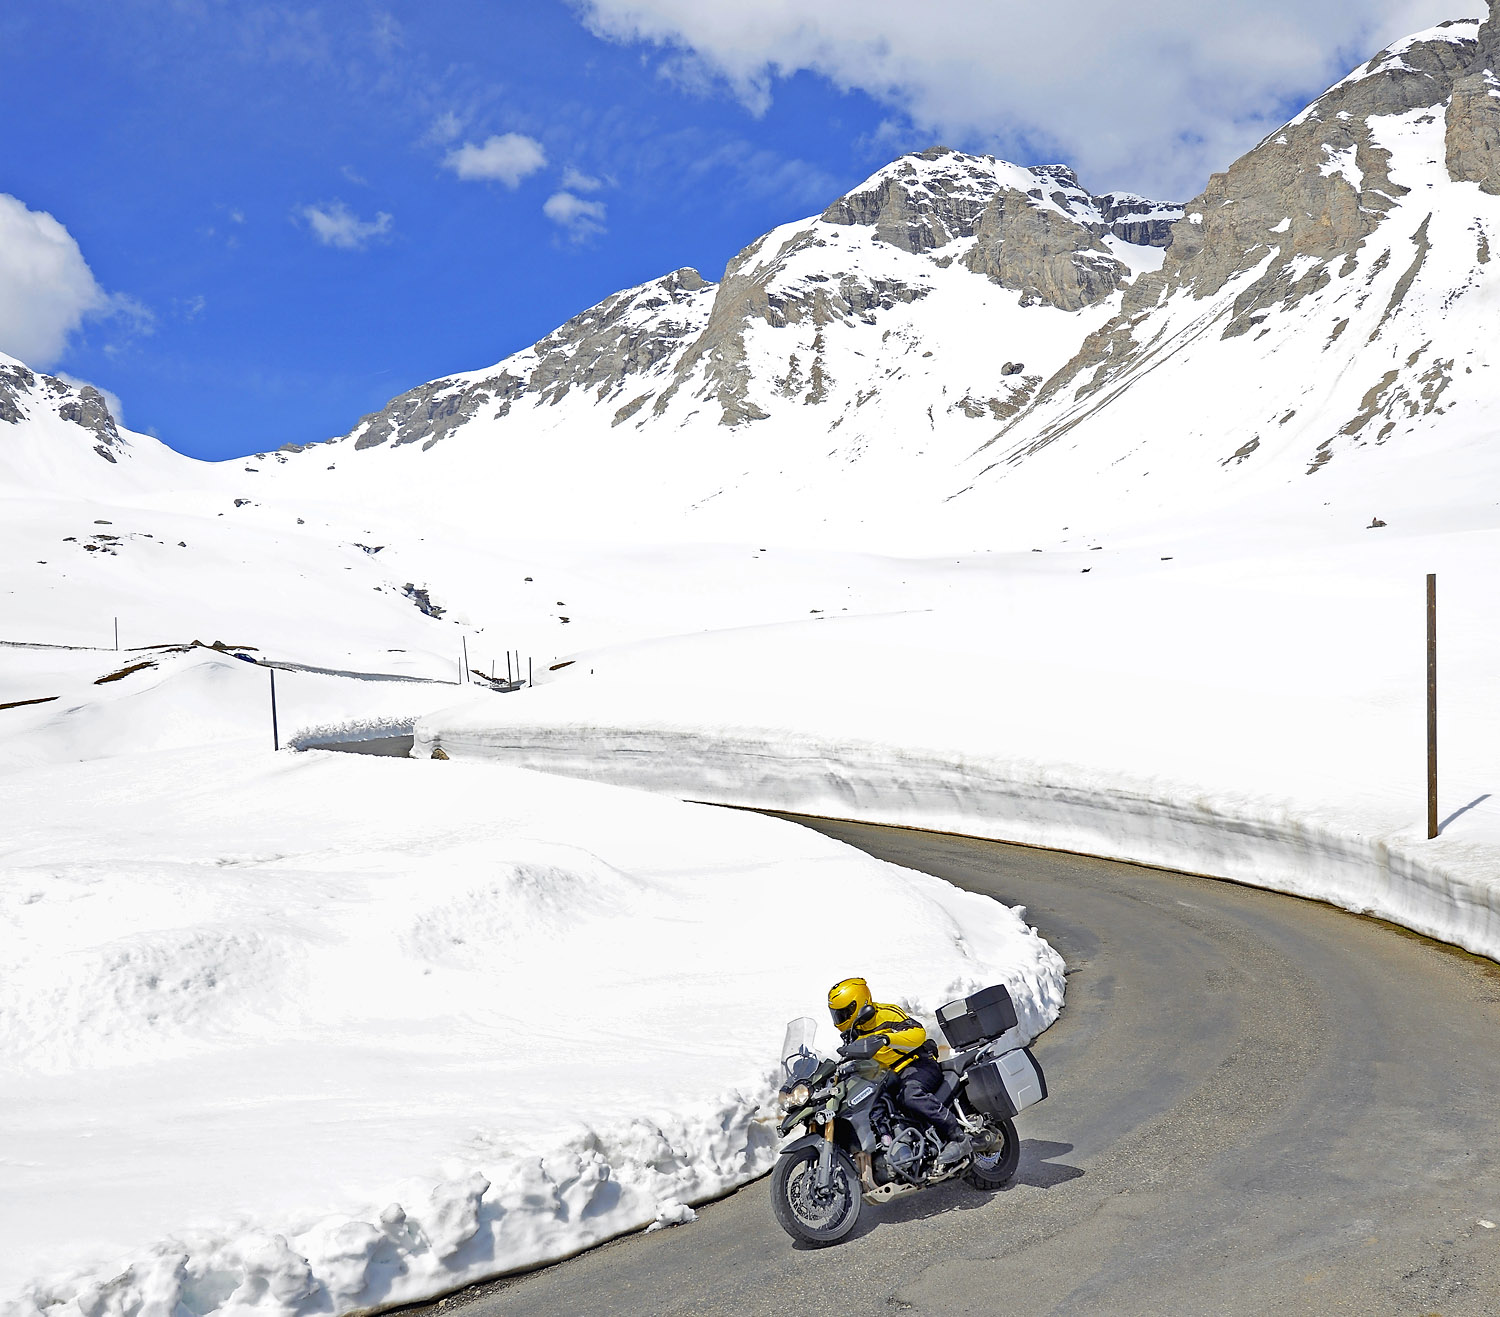 The D902 Col de la Cayolle presents an amazing spectacle, weaving between snow walls